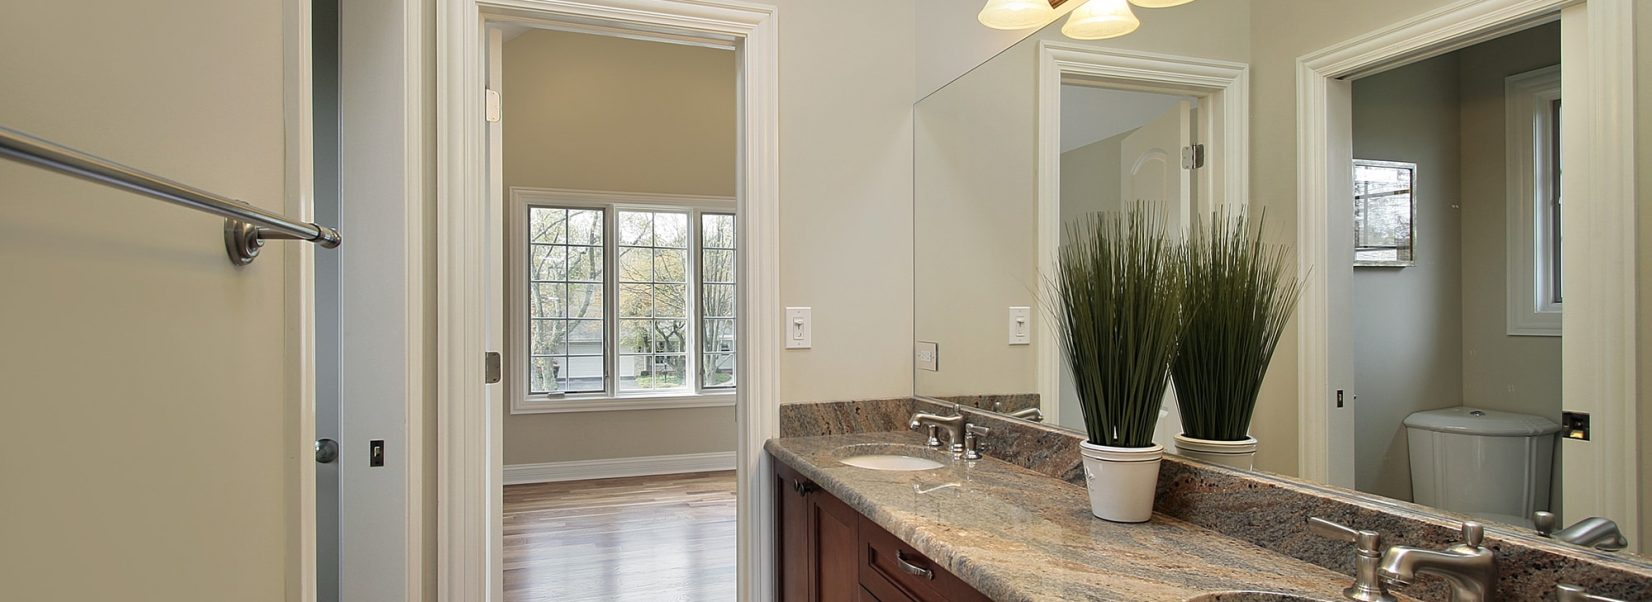 A Jack And Jill Bathroom Design Layout For Your St Louis Home